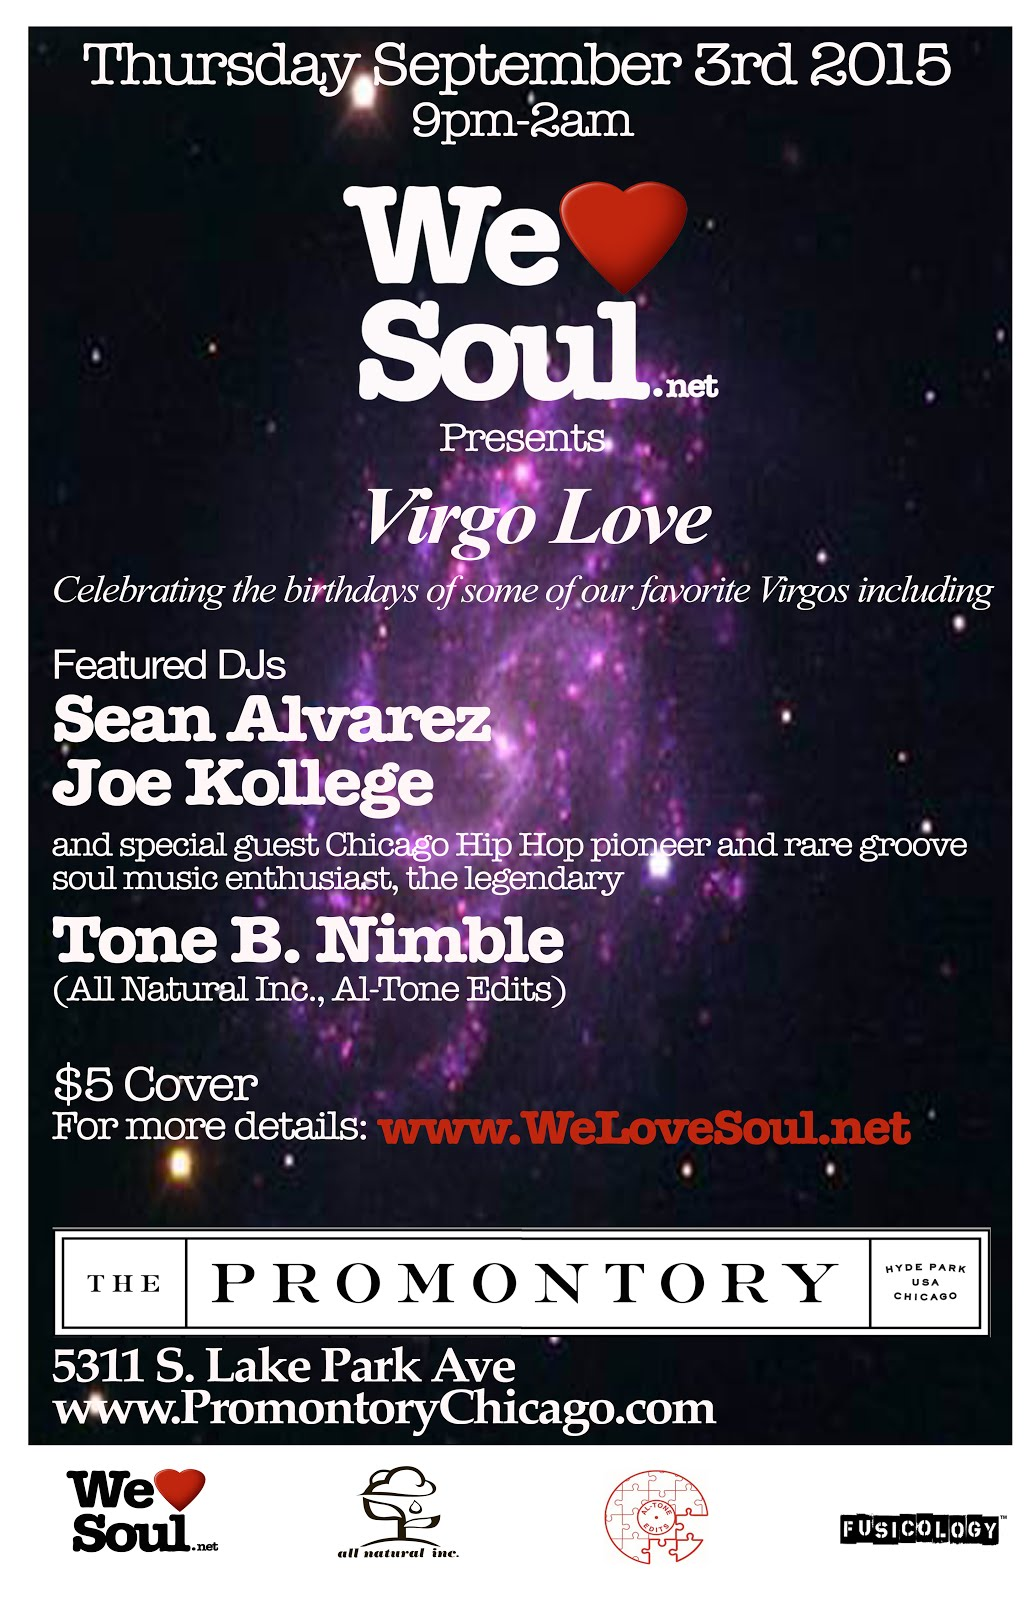 Thursday September 3rd: Virgo Love @ The Promontory